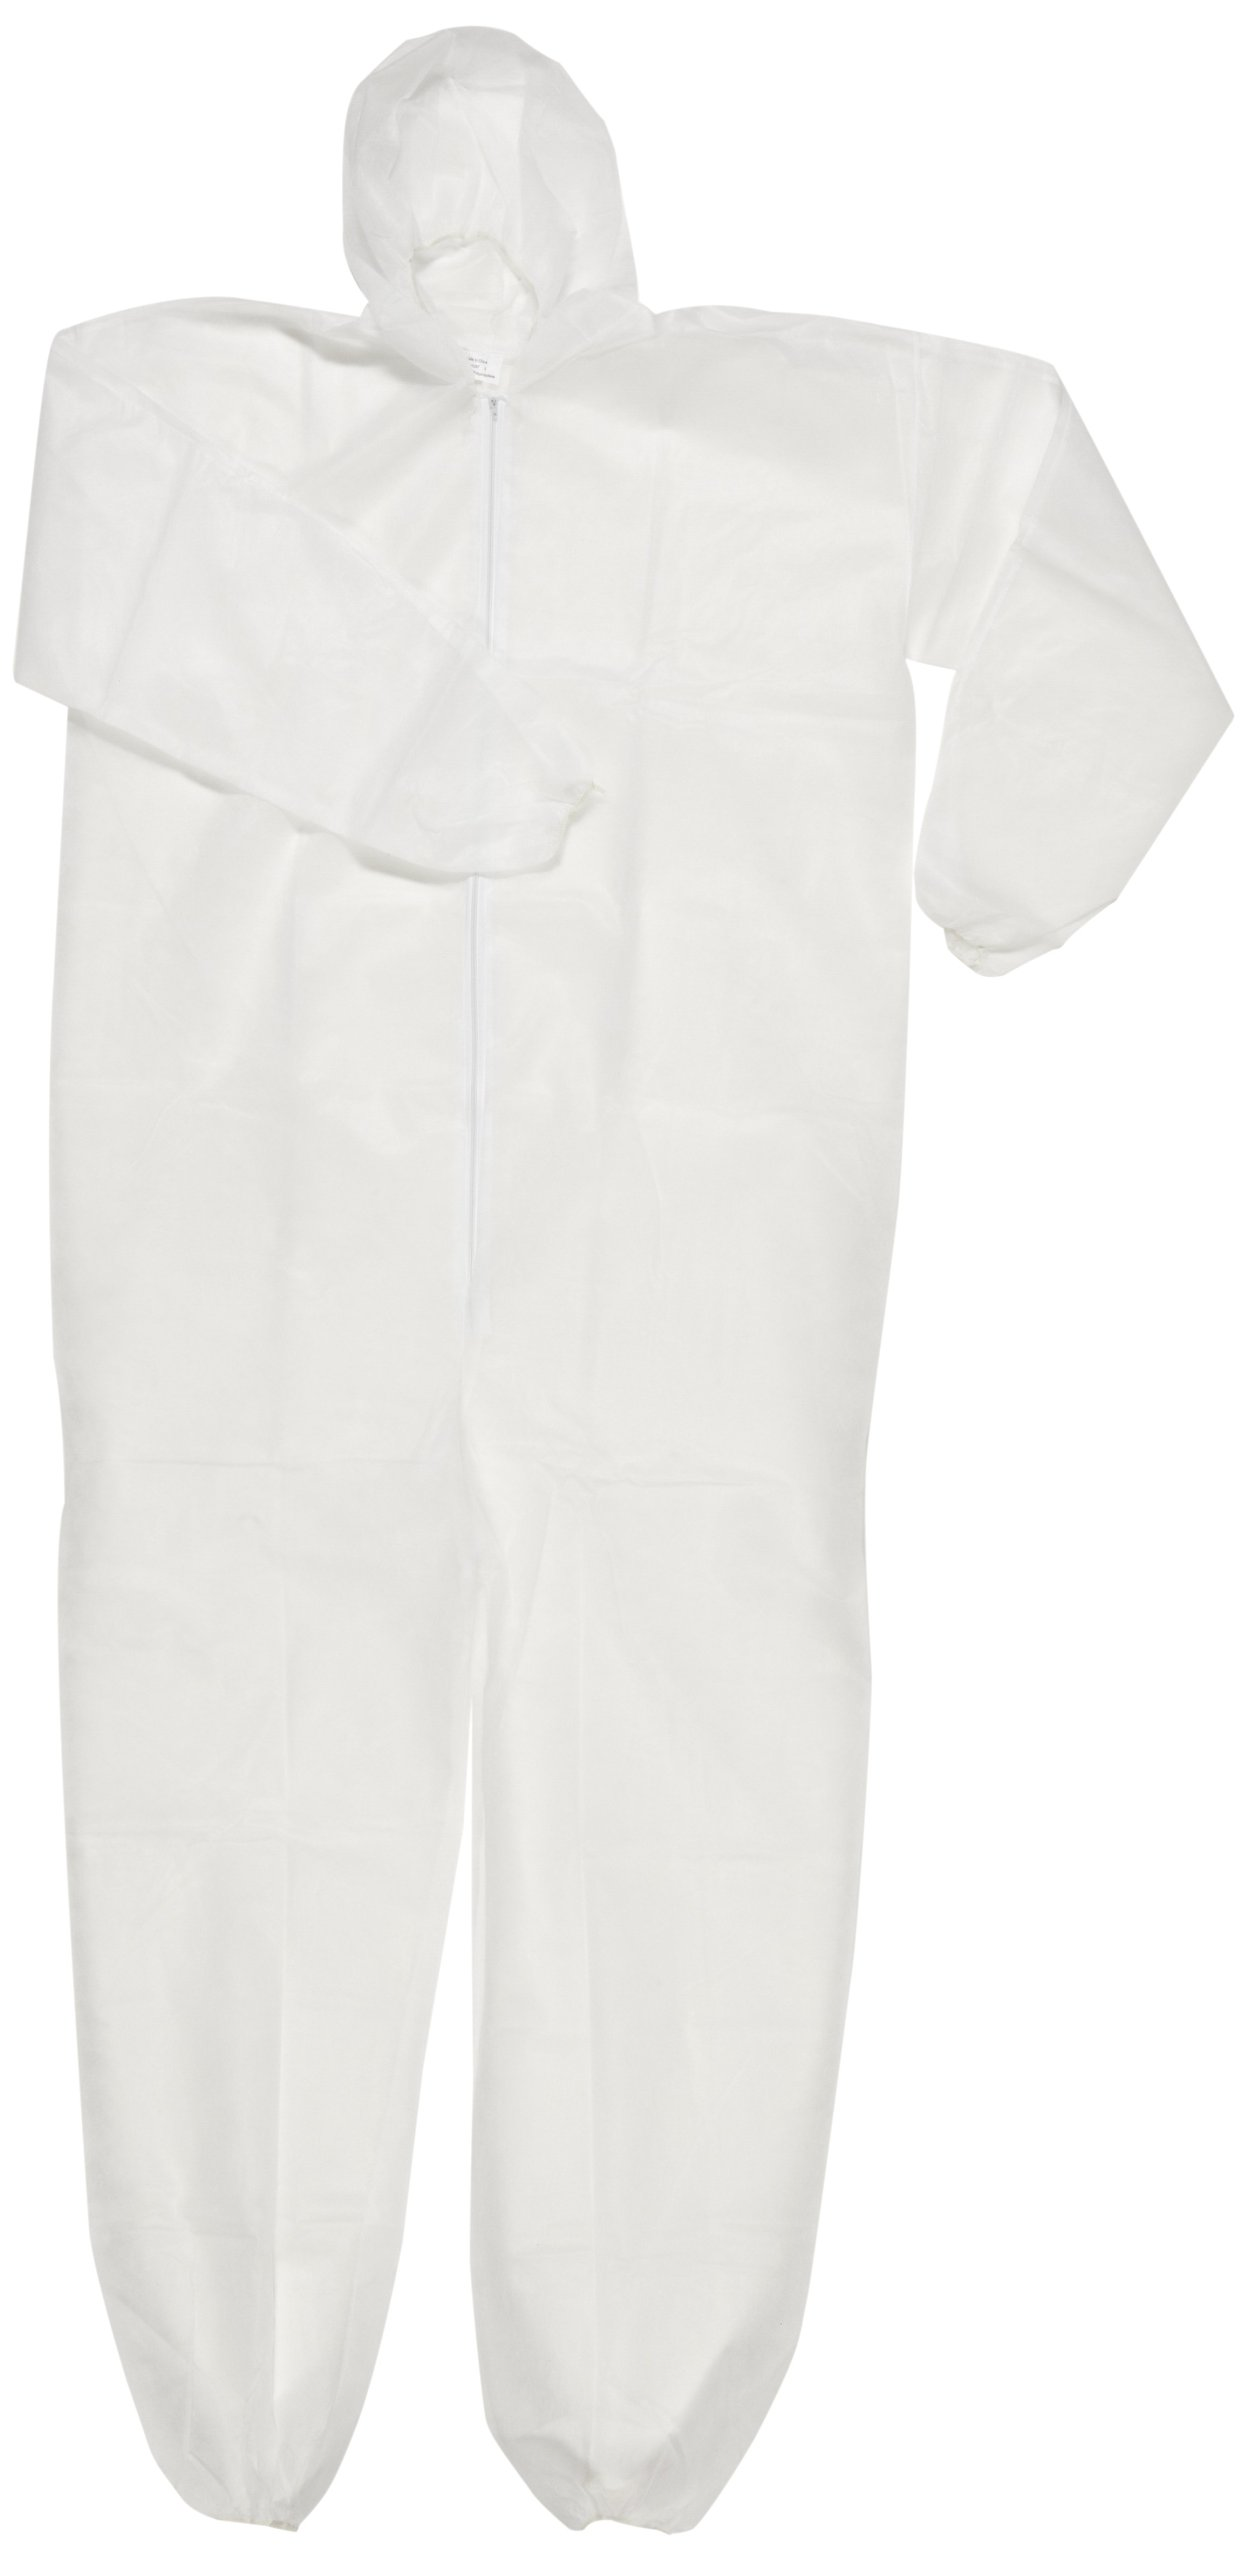 Magid EconoWear Lite N Kool Plus Polypropylene Coverall with Hood, Disposable, Elastic Cuff, White, Large (Case of 25)